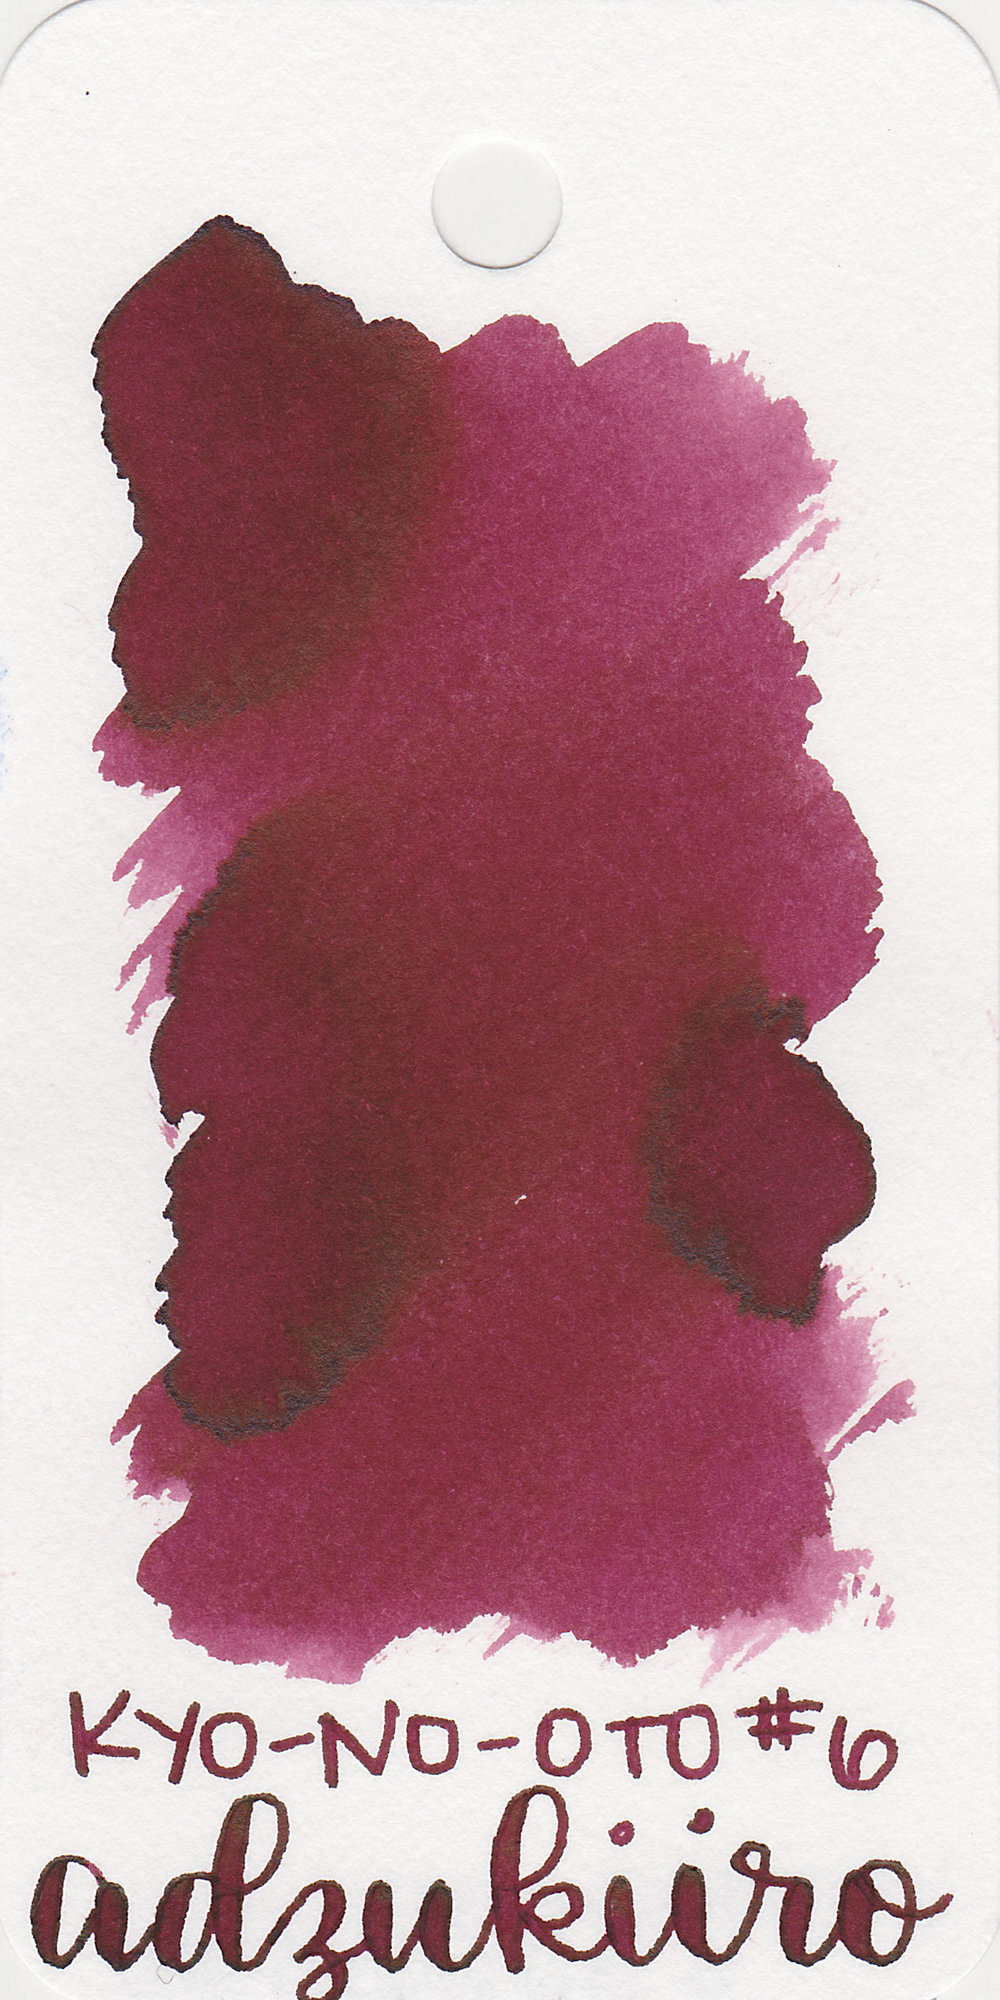 The color: - Adzukiiro is a dark wine red.